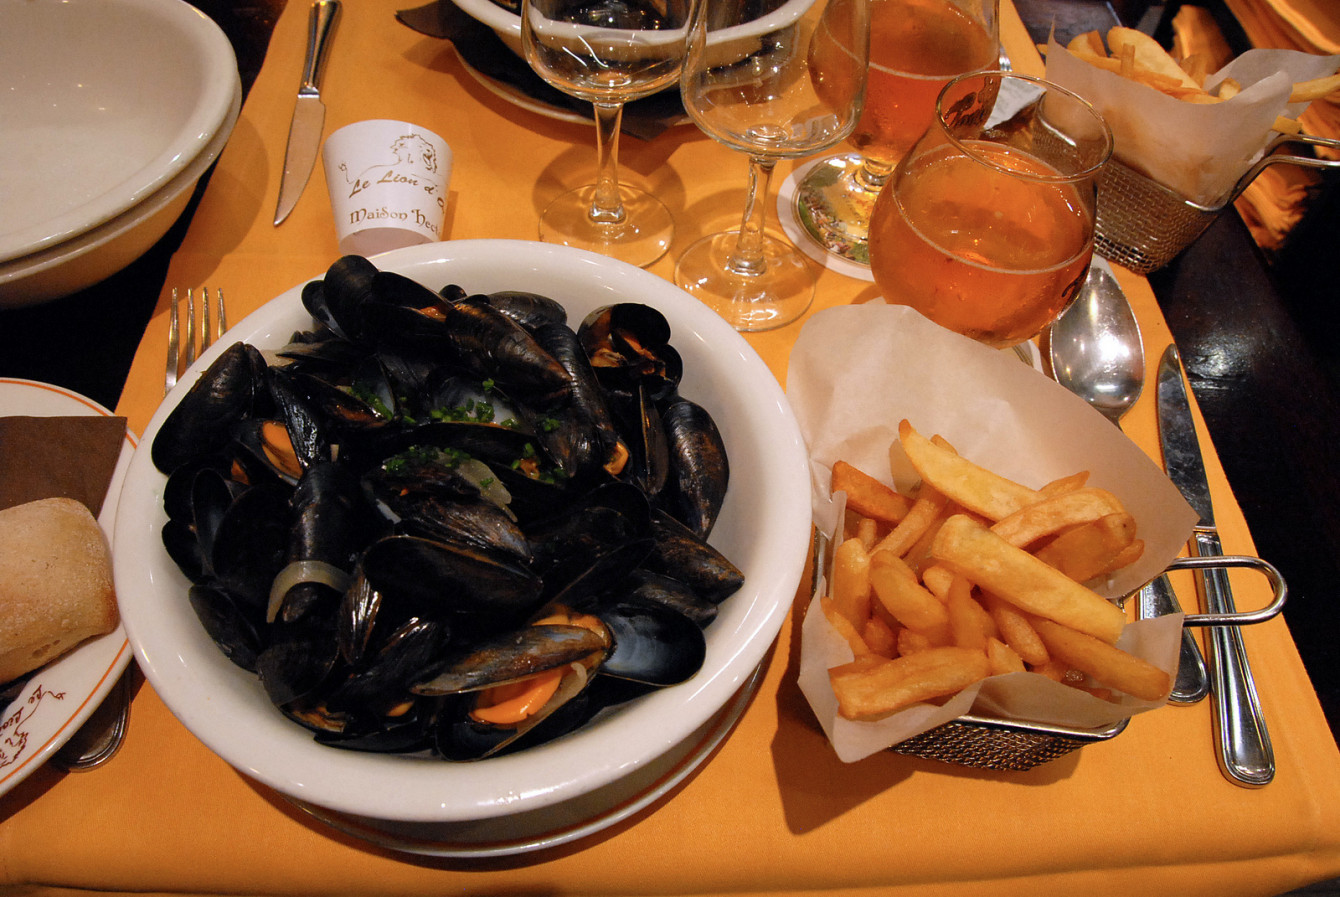 Moules-frites au Lion d'Or